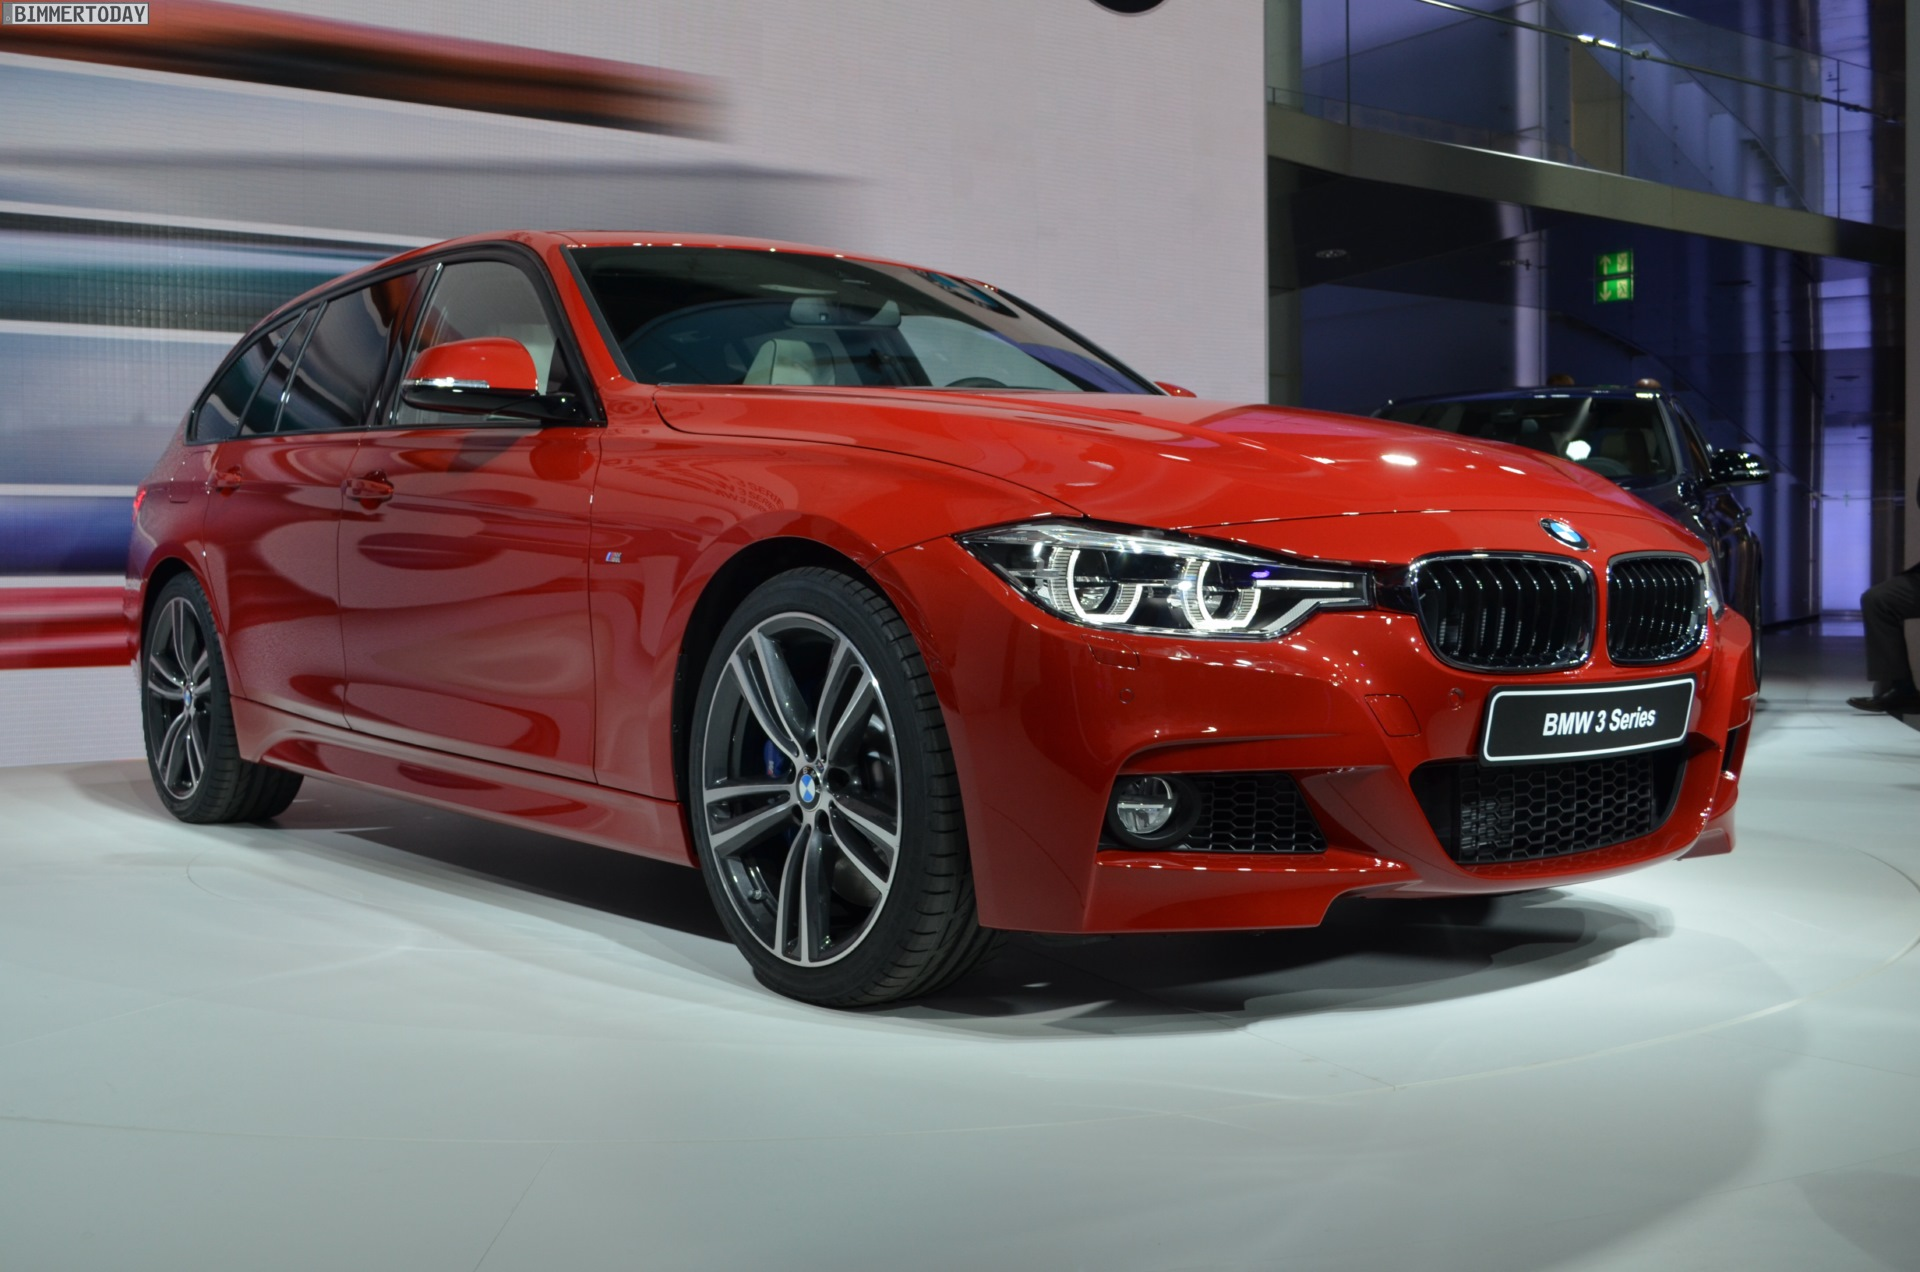 Bmw 340i Touring With M Sport Package In Melbourne Red